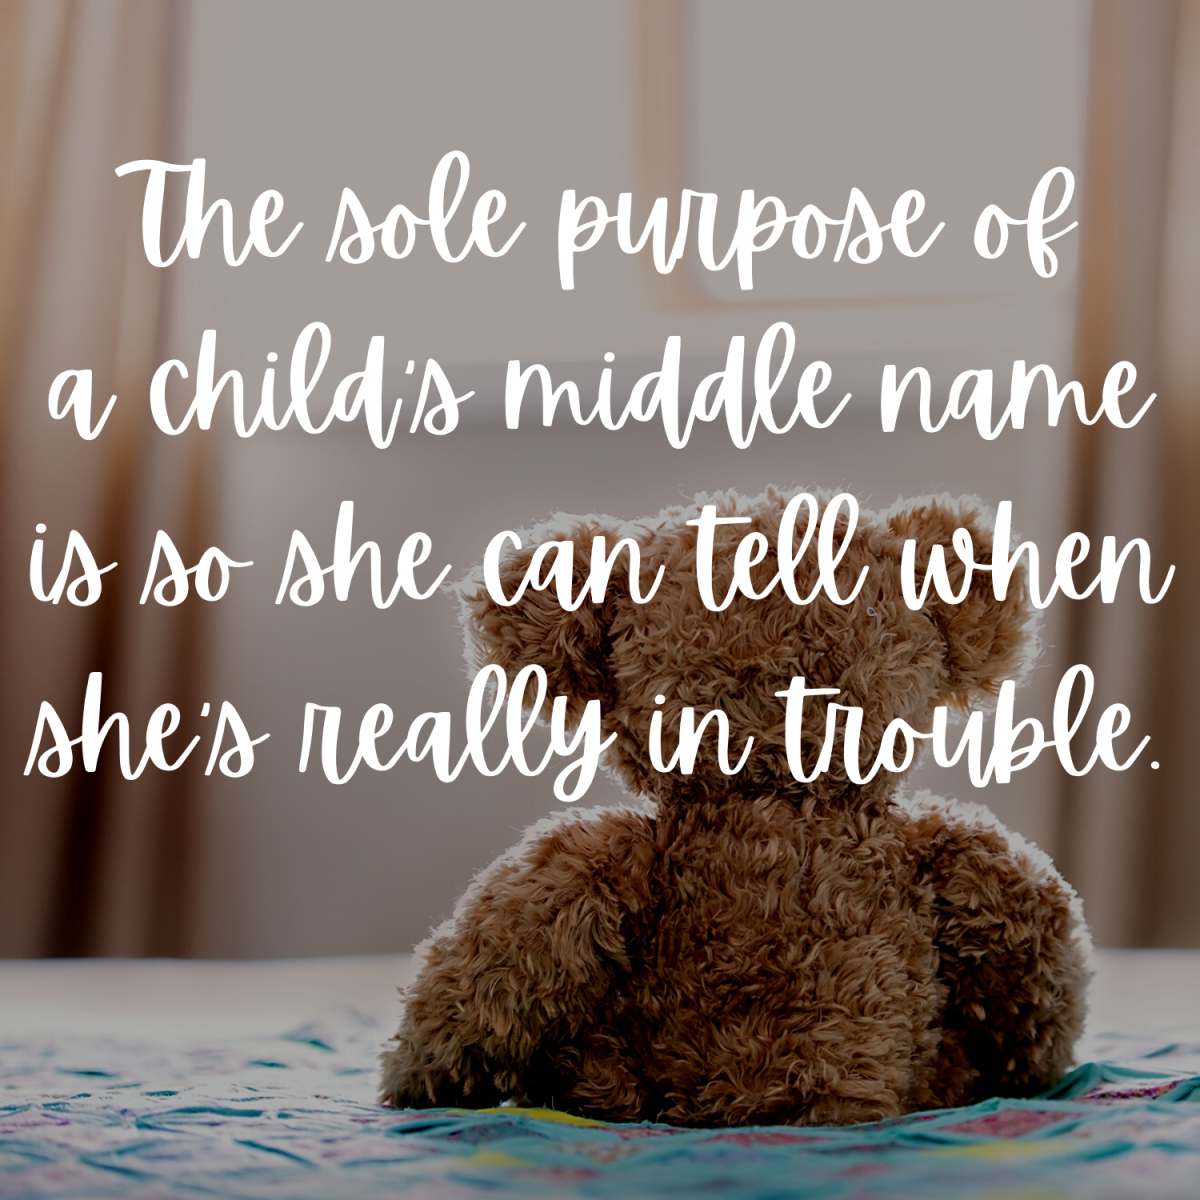 The sole purpose of a child's middle name is so she can tell when she's really in trouble.